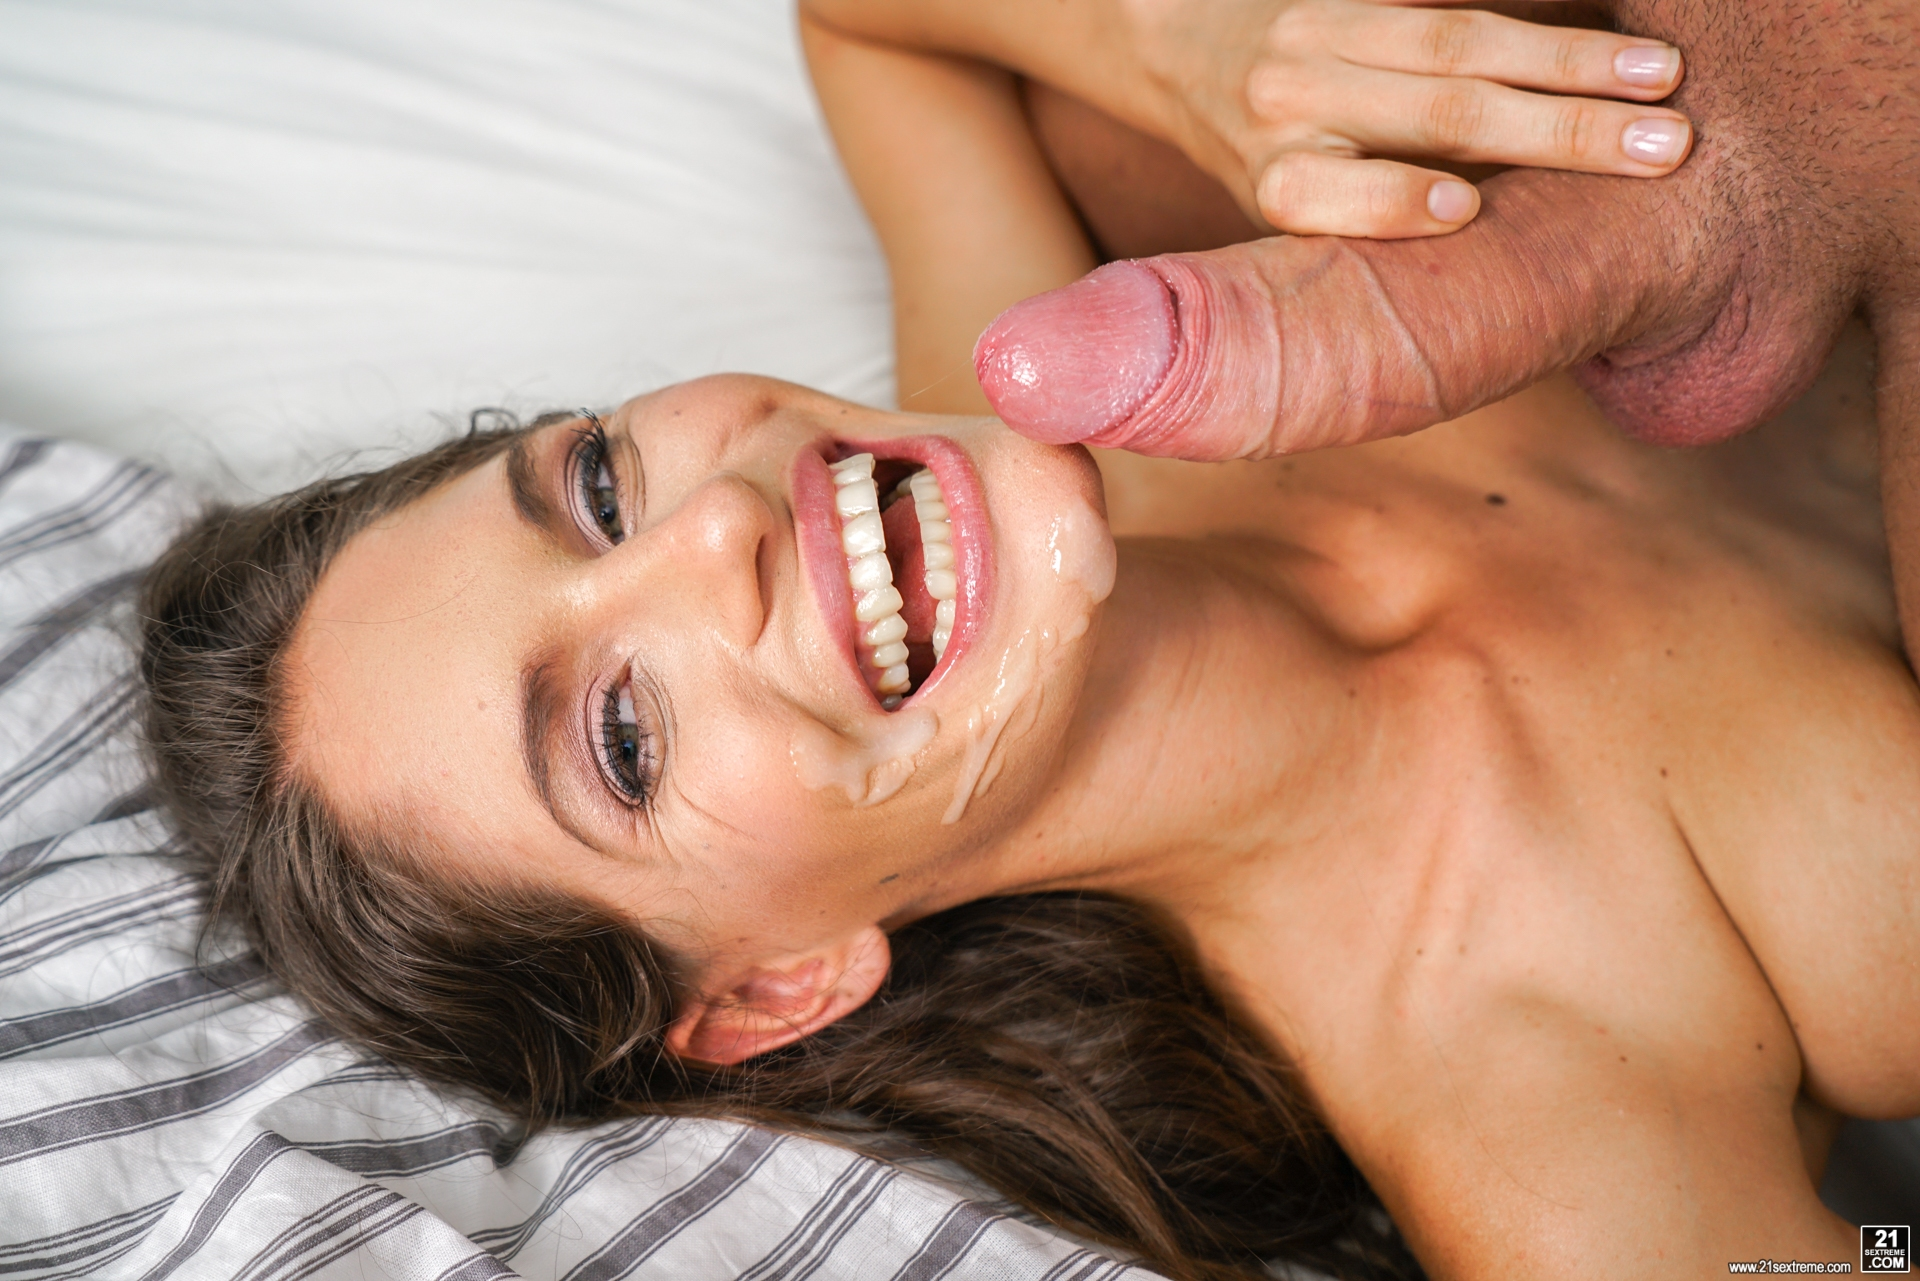 Edyn blair loves to get fucked - 5 9